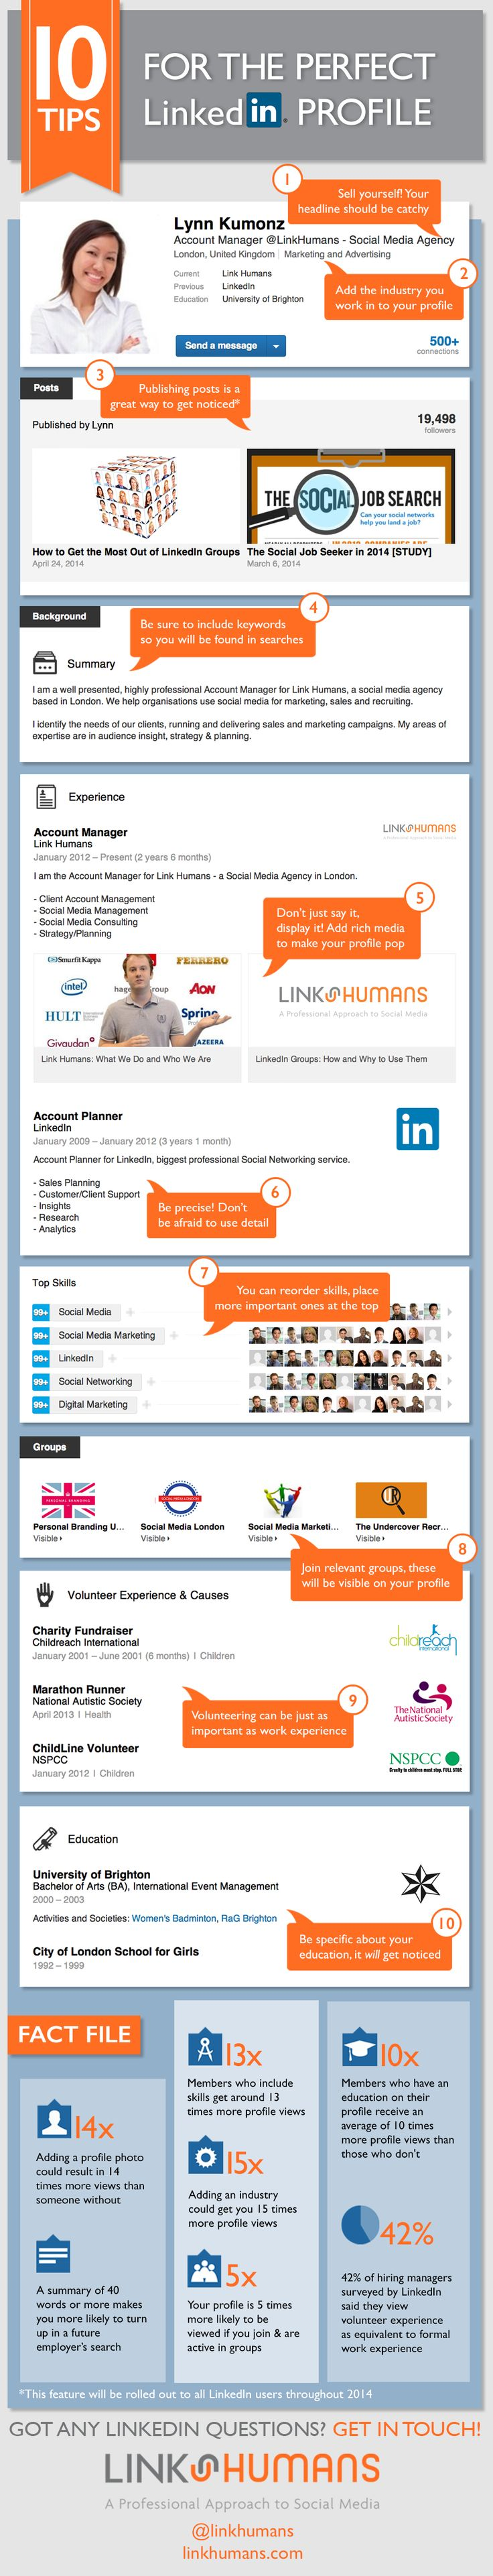 the ultimate guide to building a killer linkedin profile infographic